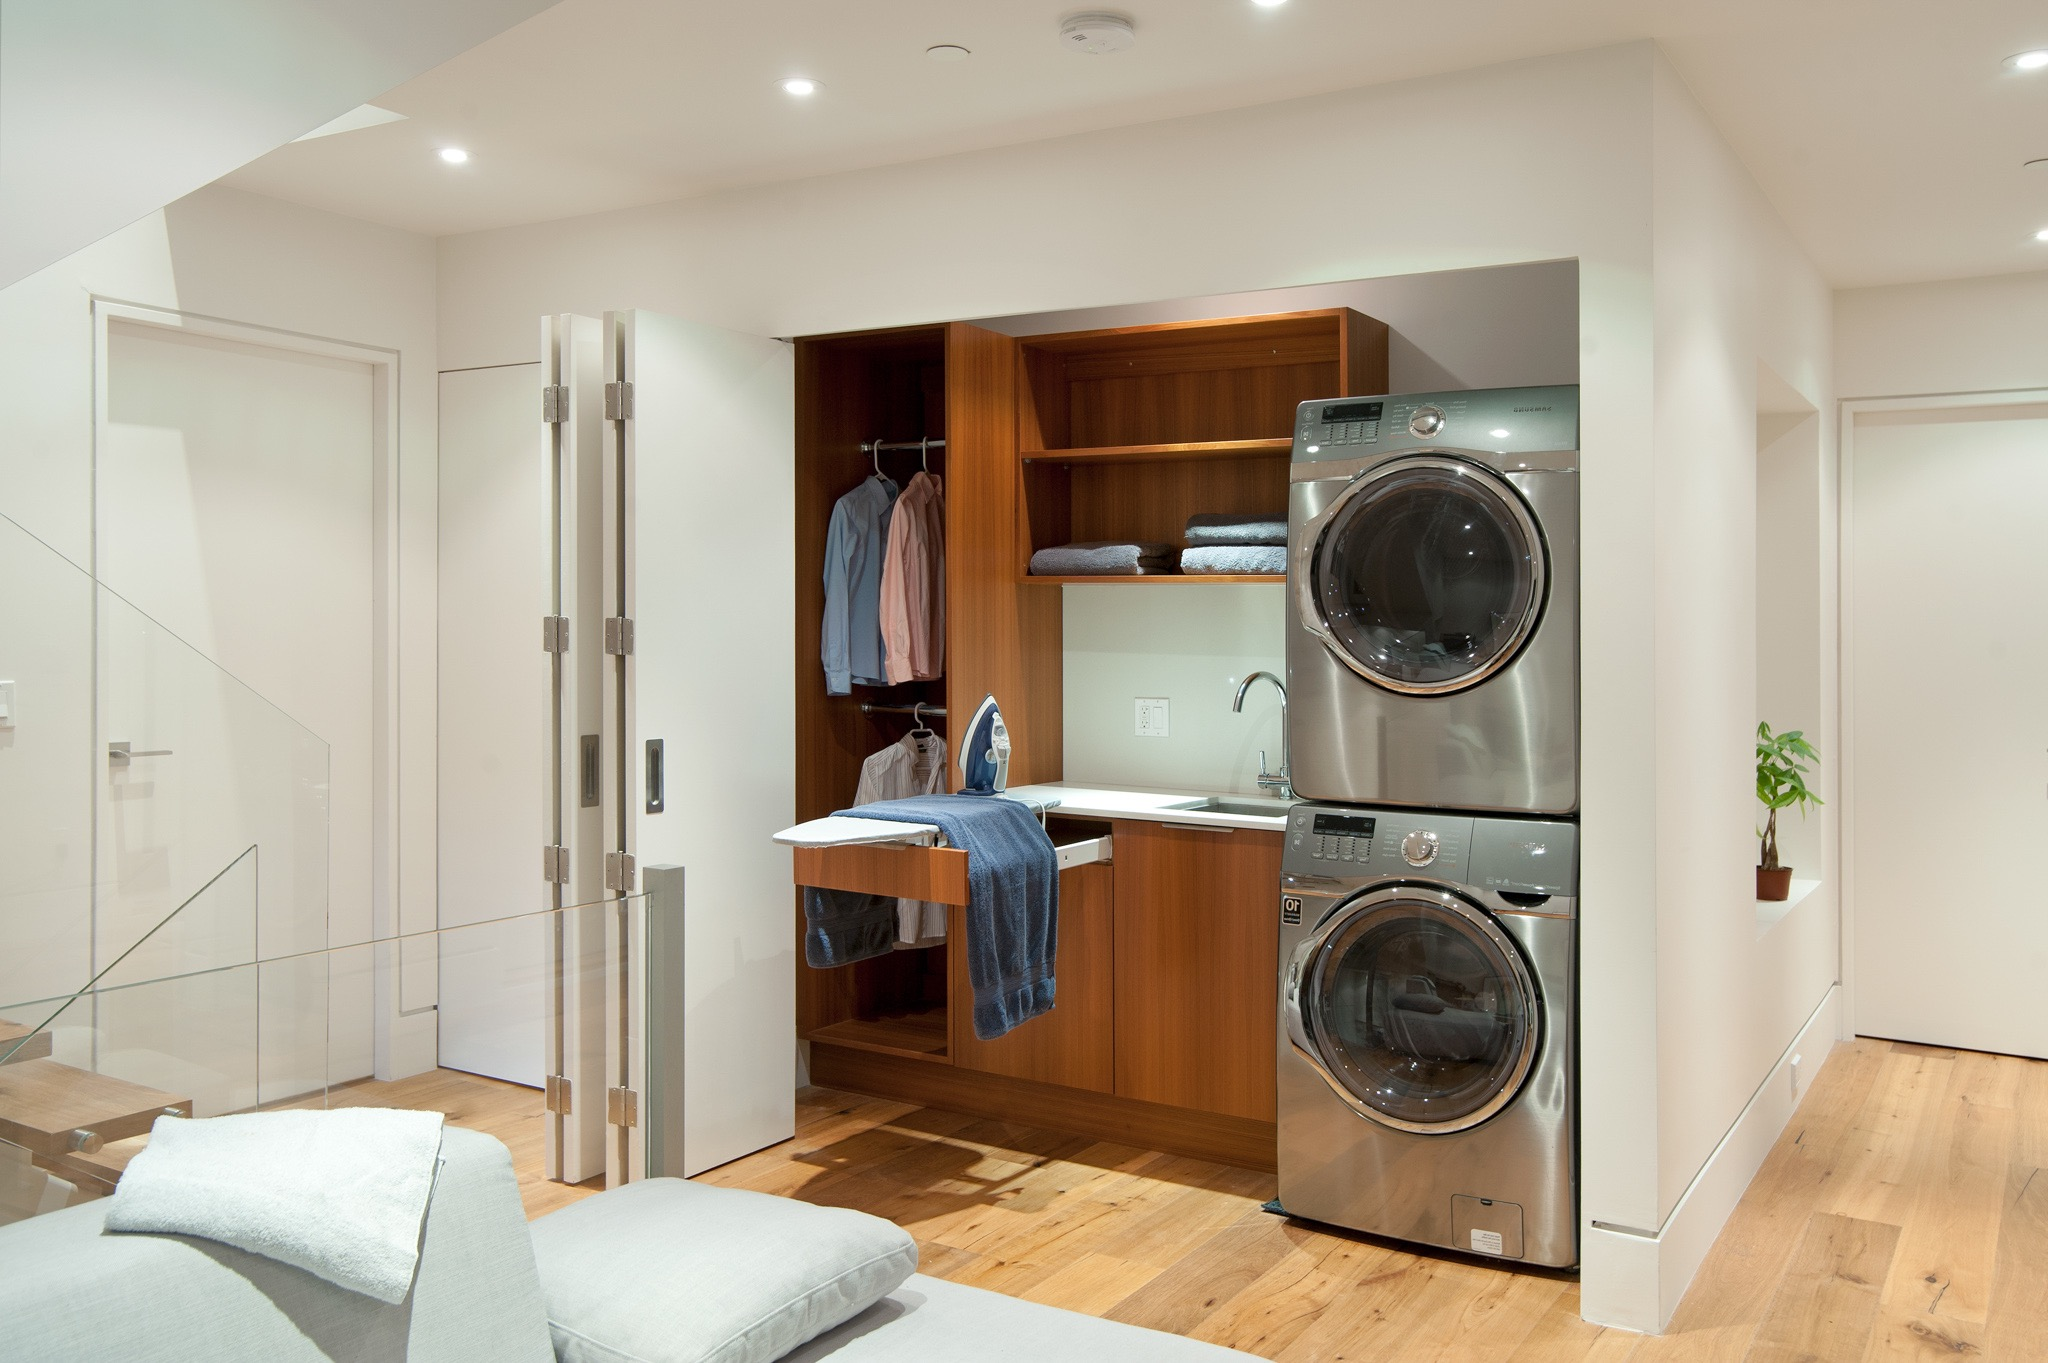 Contemporary Laundry Closet With Teak Cabinetry (Image 6 of 26)